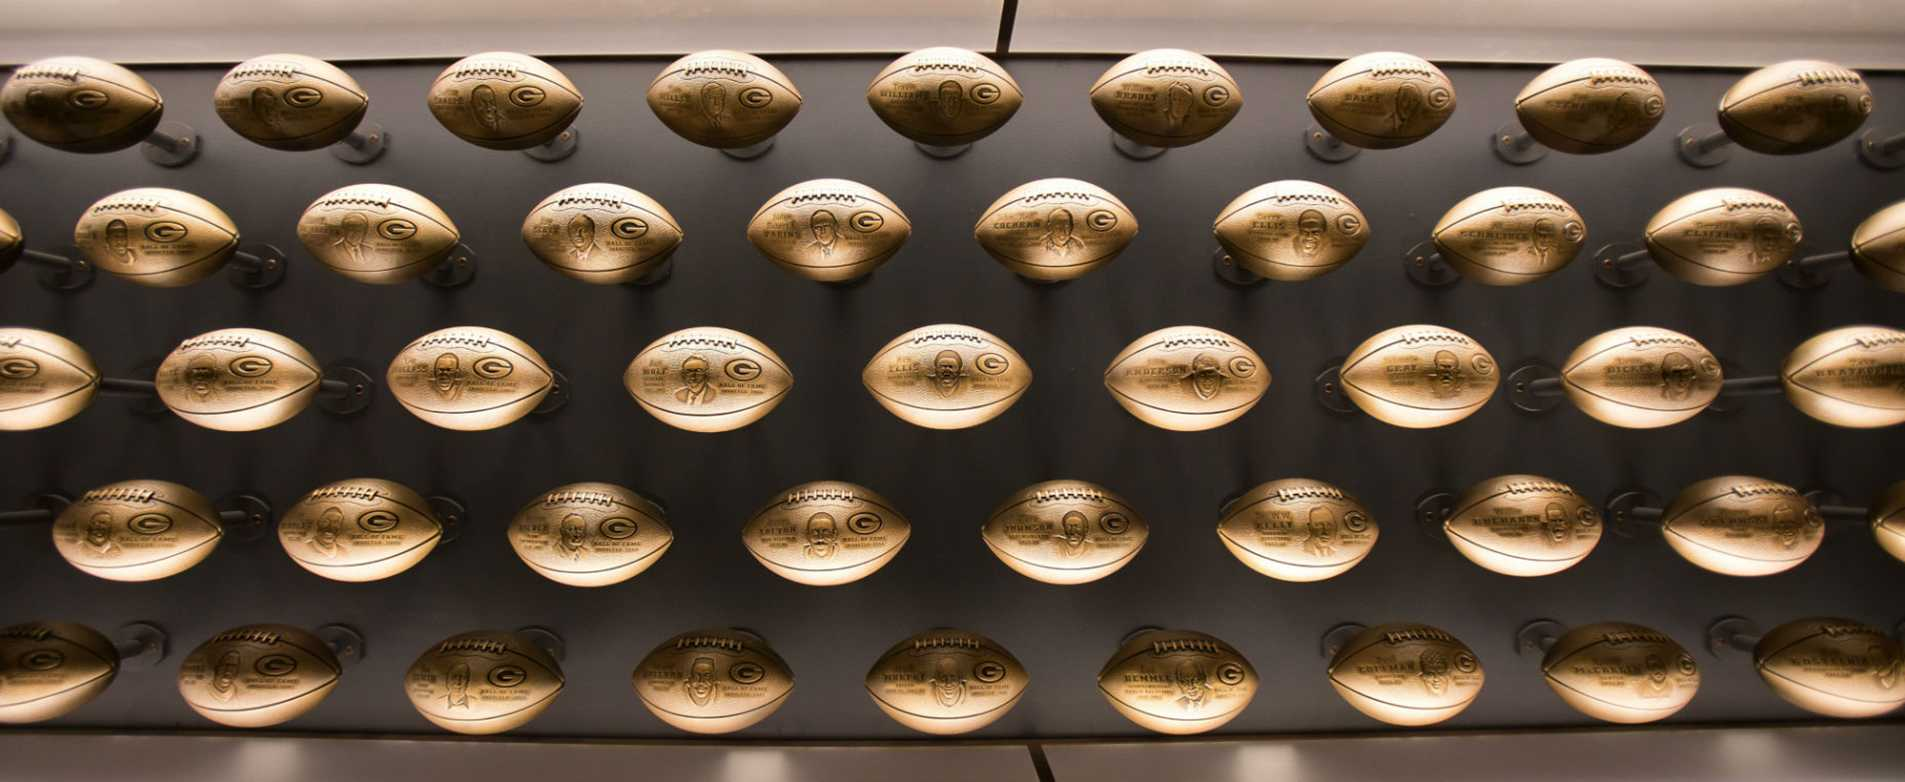 Wall of Footballs in Packers Hall of Fame Induction